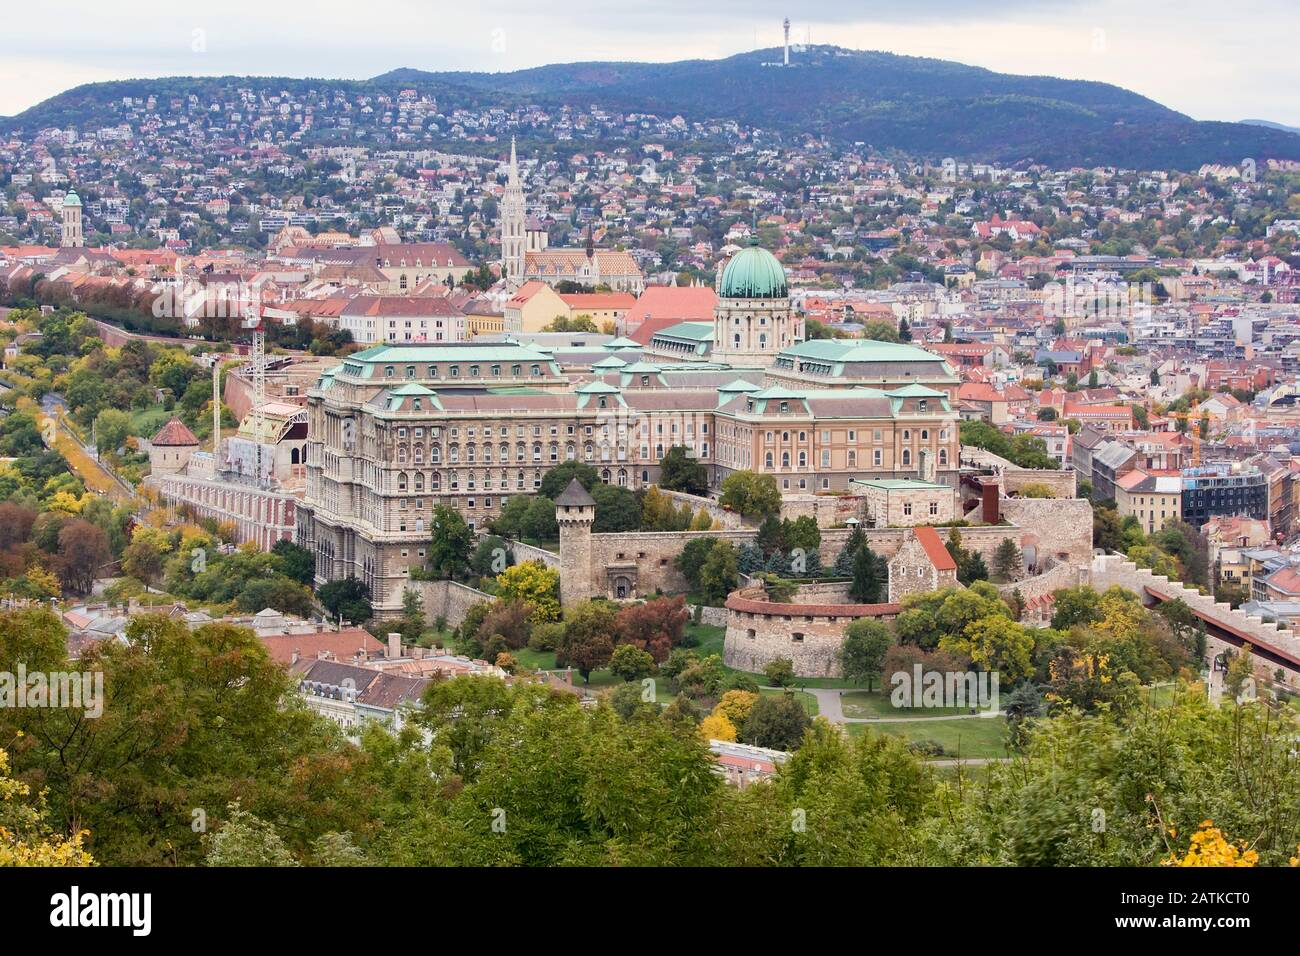 View of Buda Castle Royal Palace on the southern tip of Castle Hill int the Buda side of Budapest, Hungary. A UNESCO World Heritage Site. Stock Photo